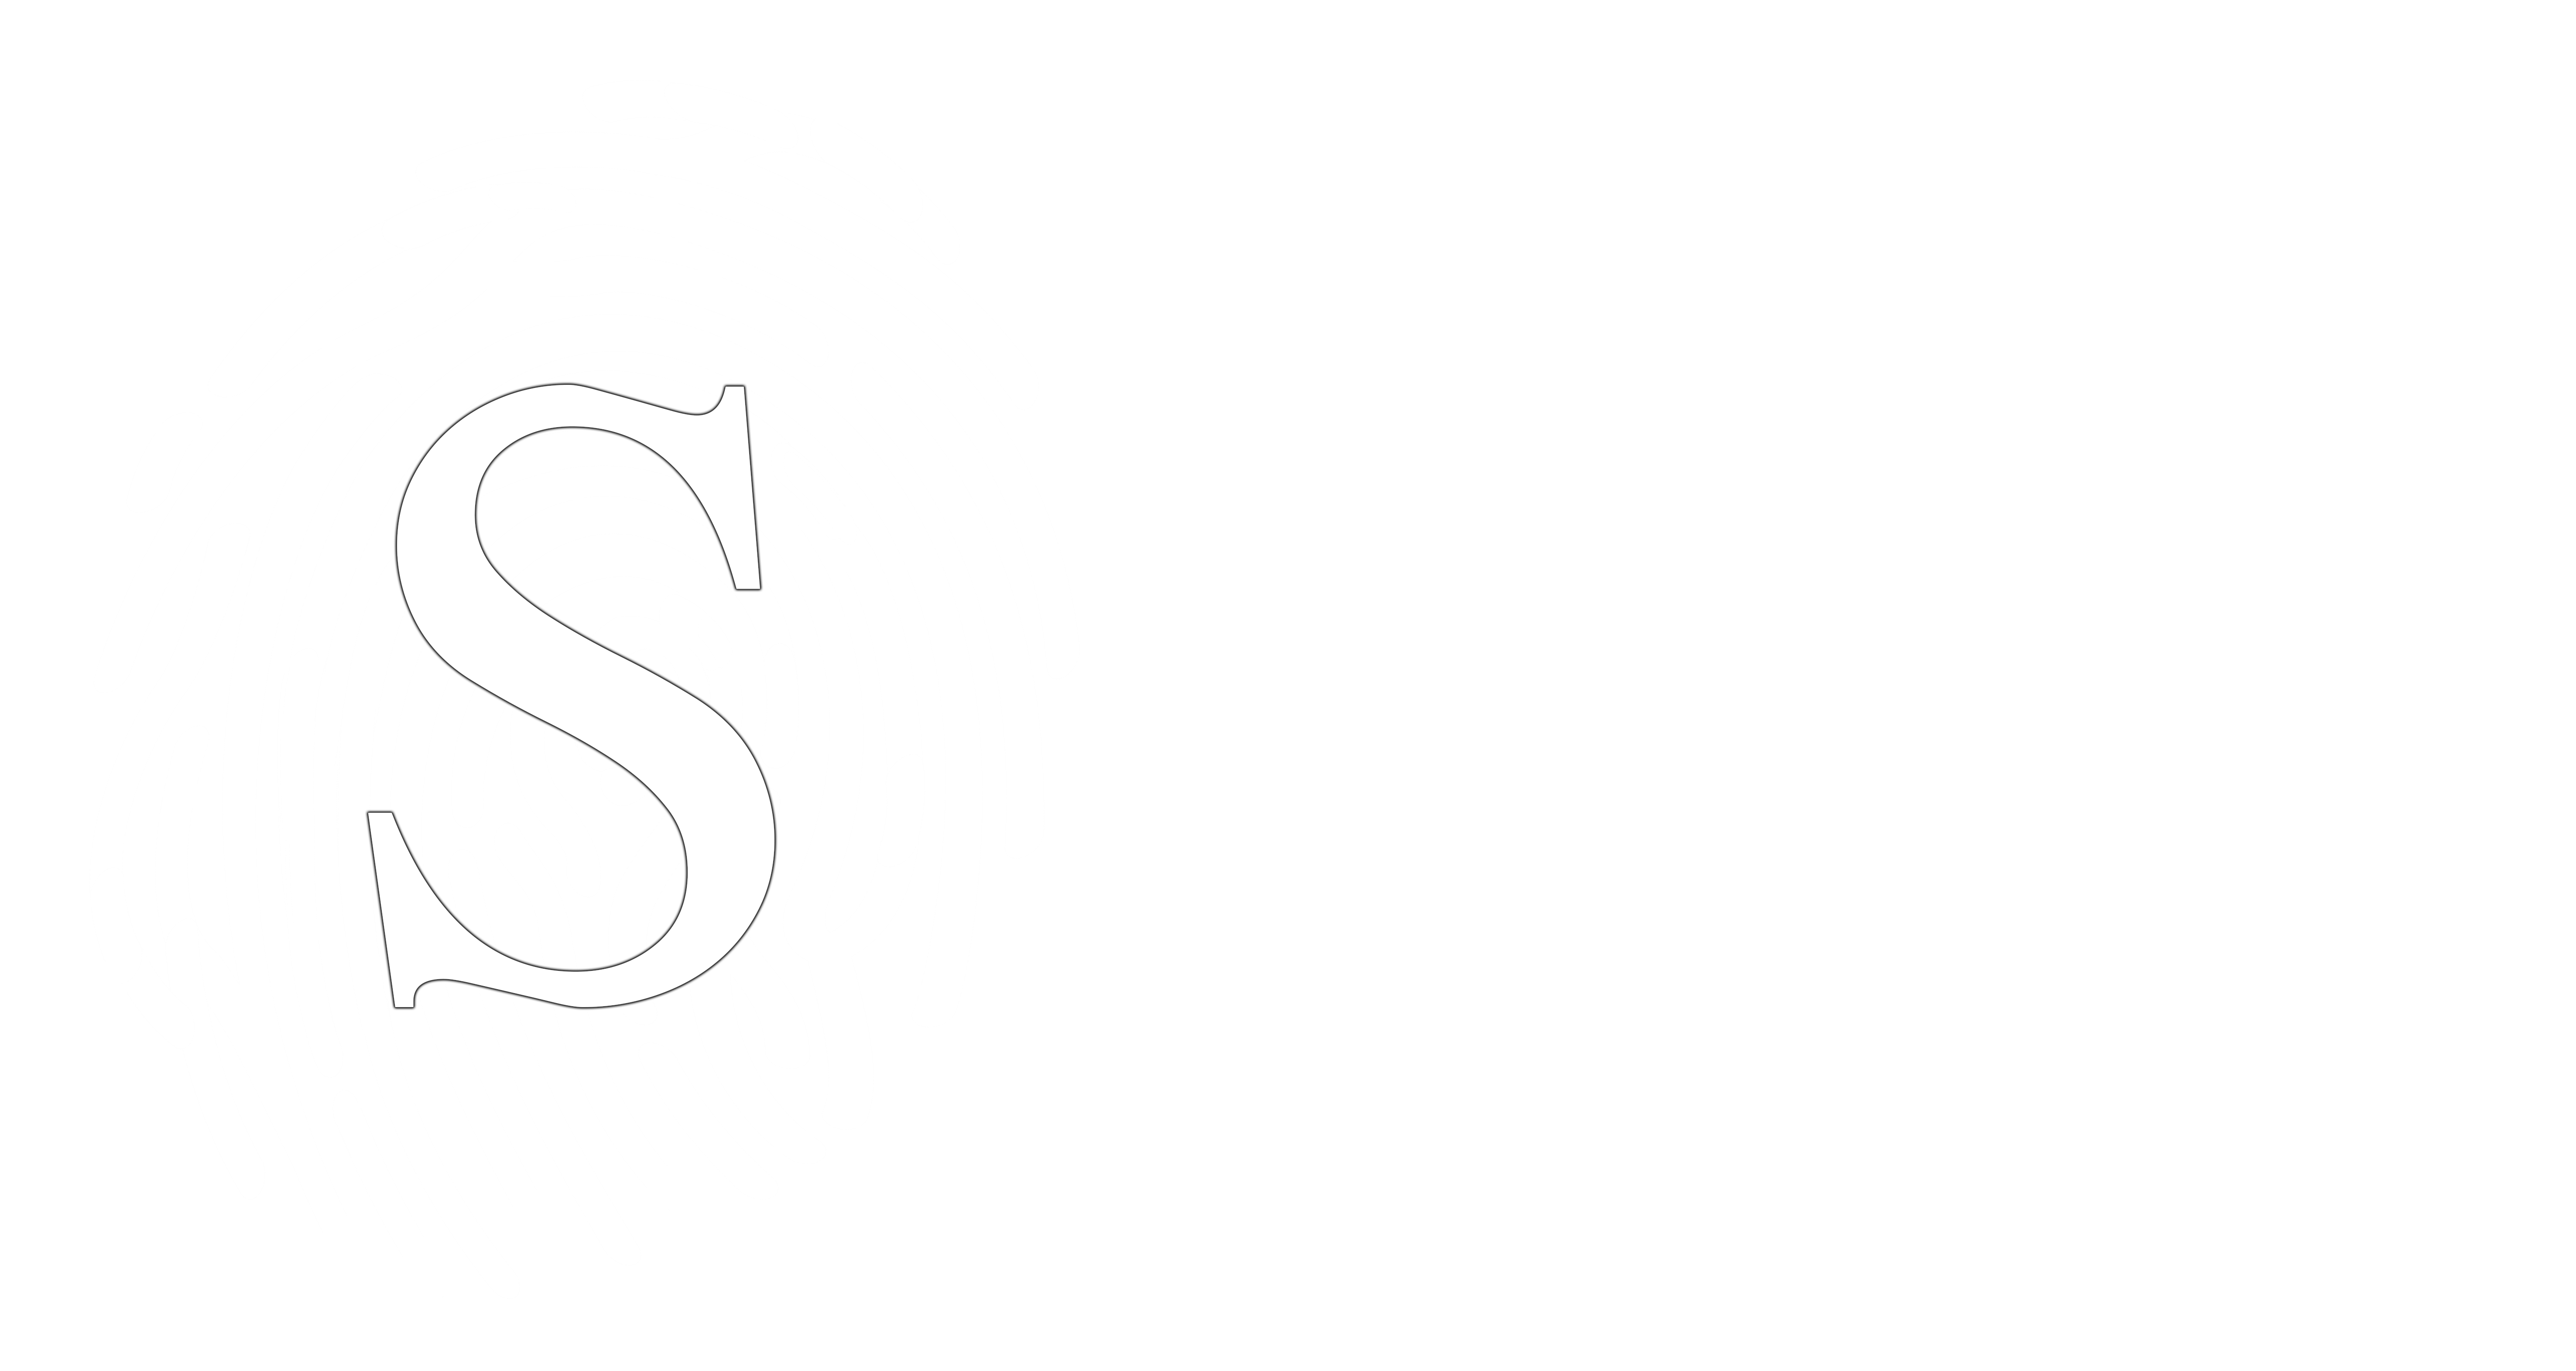 Powered by Stern Security